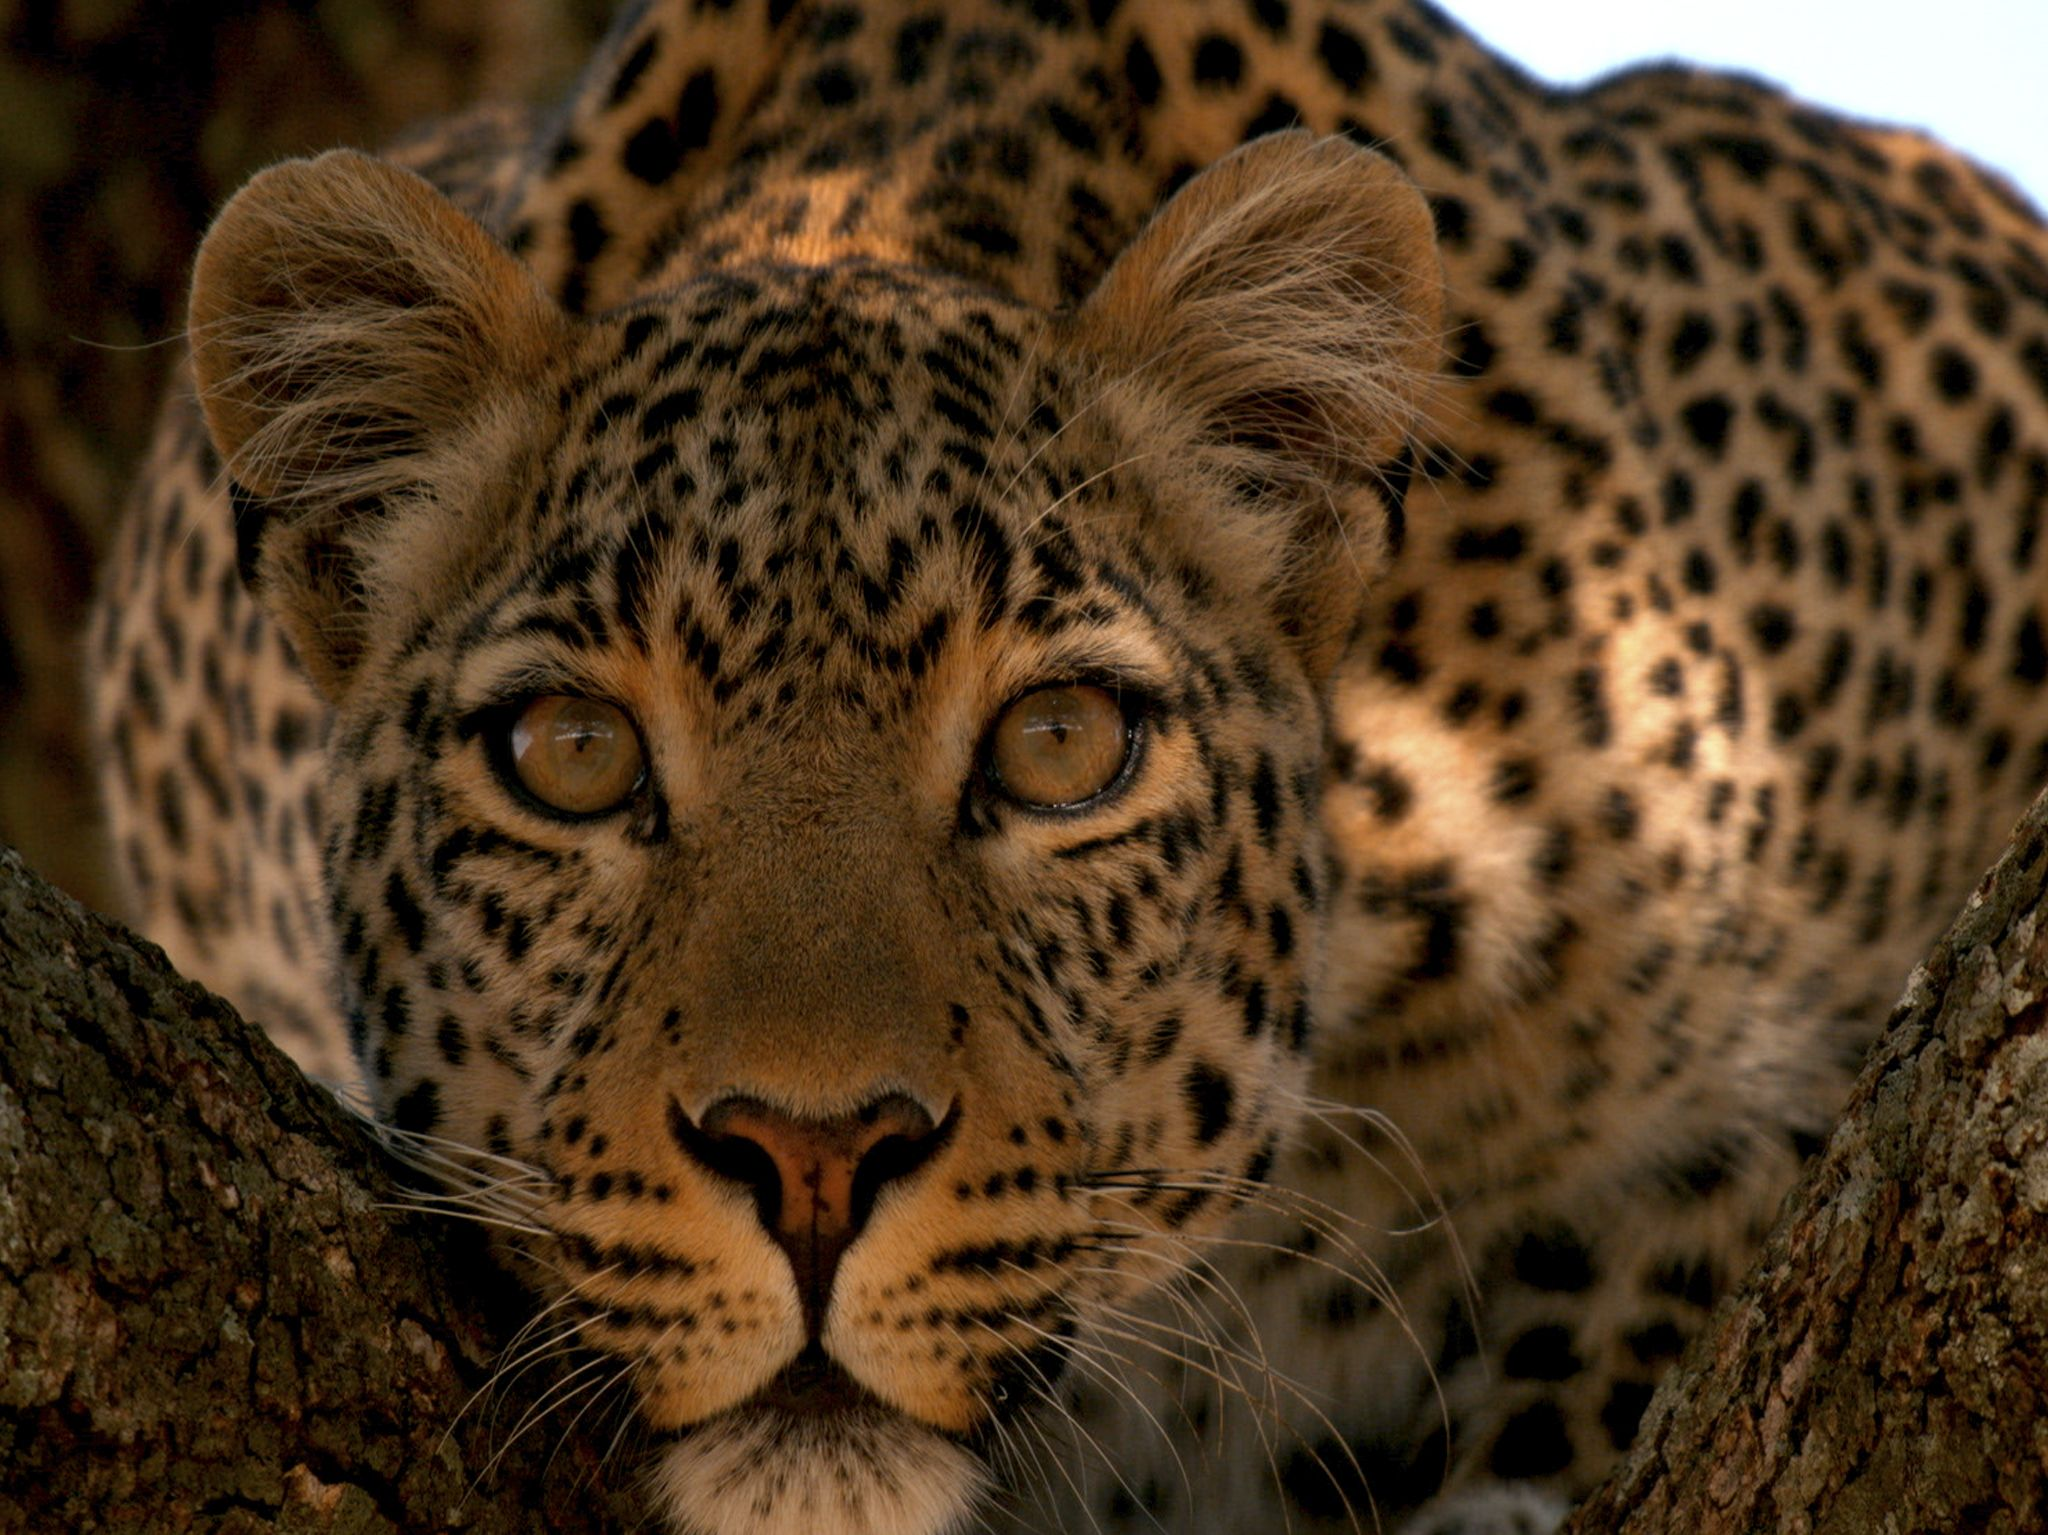 Fig in a tree, looking alert. This image is from Jade Eyed Leopard. [Photo of the day - February 2021]